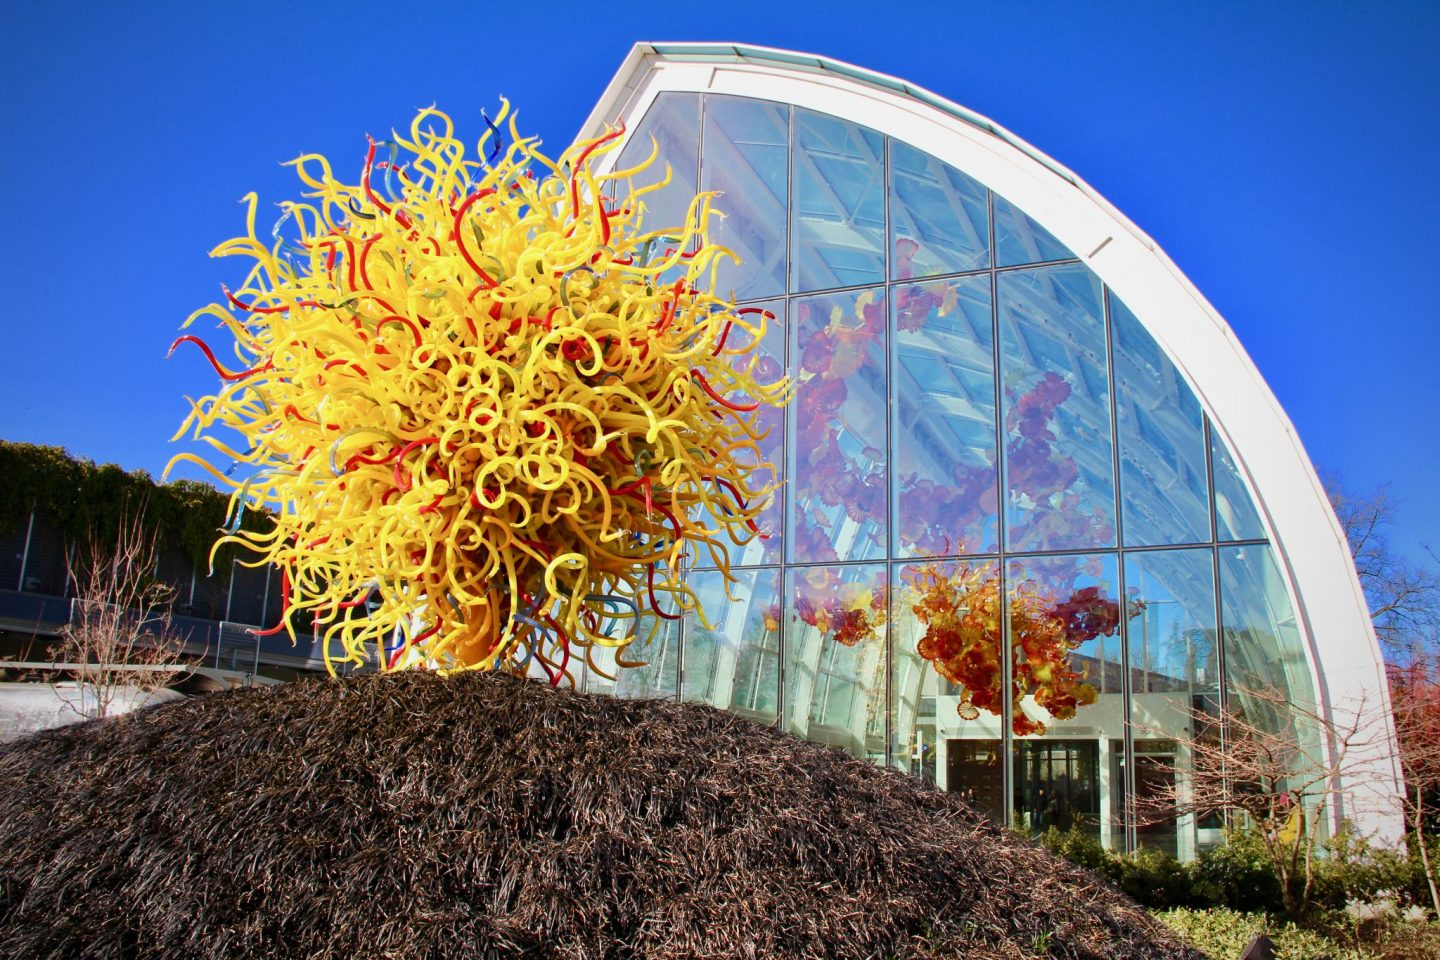 Chihuly Glass Museum Seattle, Washington - The Spectacular Adventurer